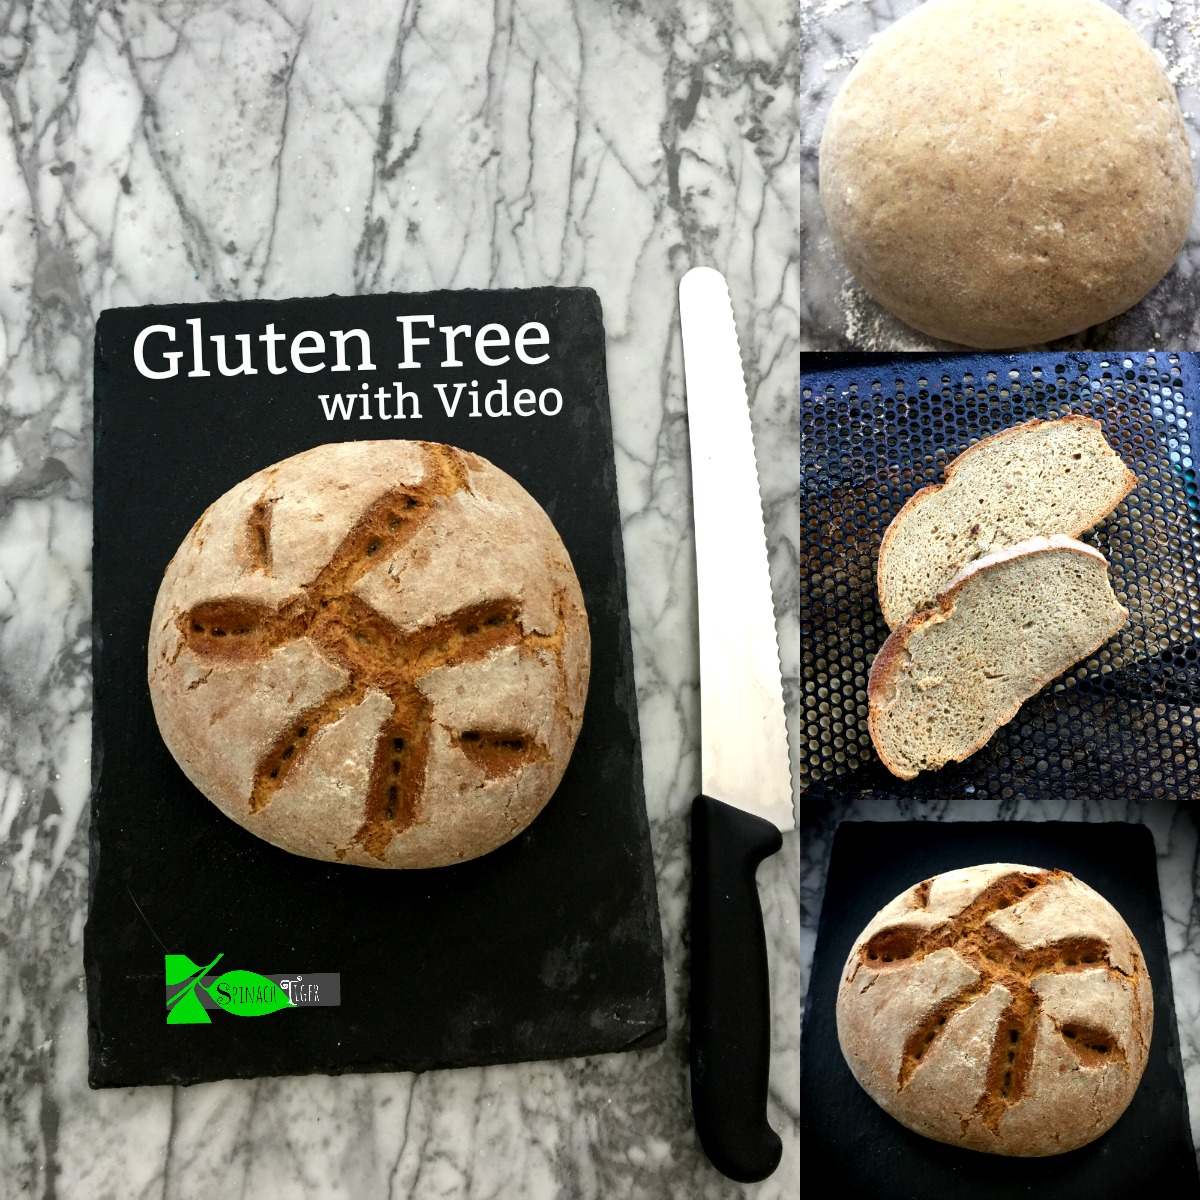 Artisan Bread: Gluten Free Whole Grain Bread from Spinach Tiger